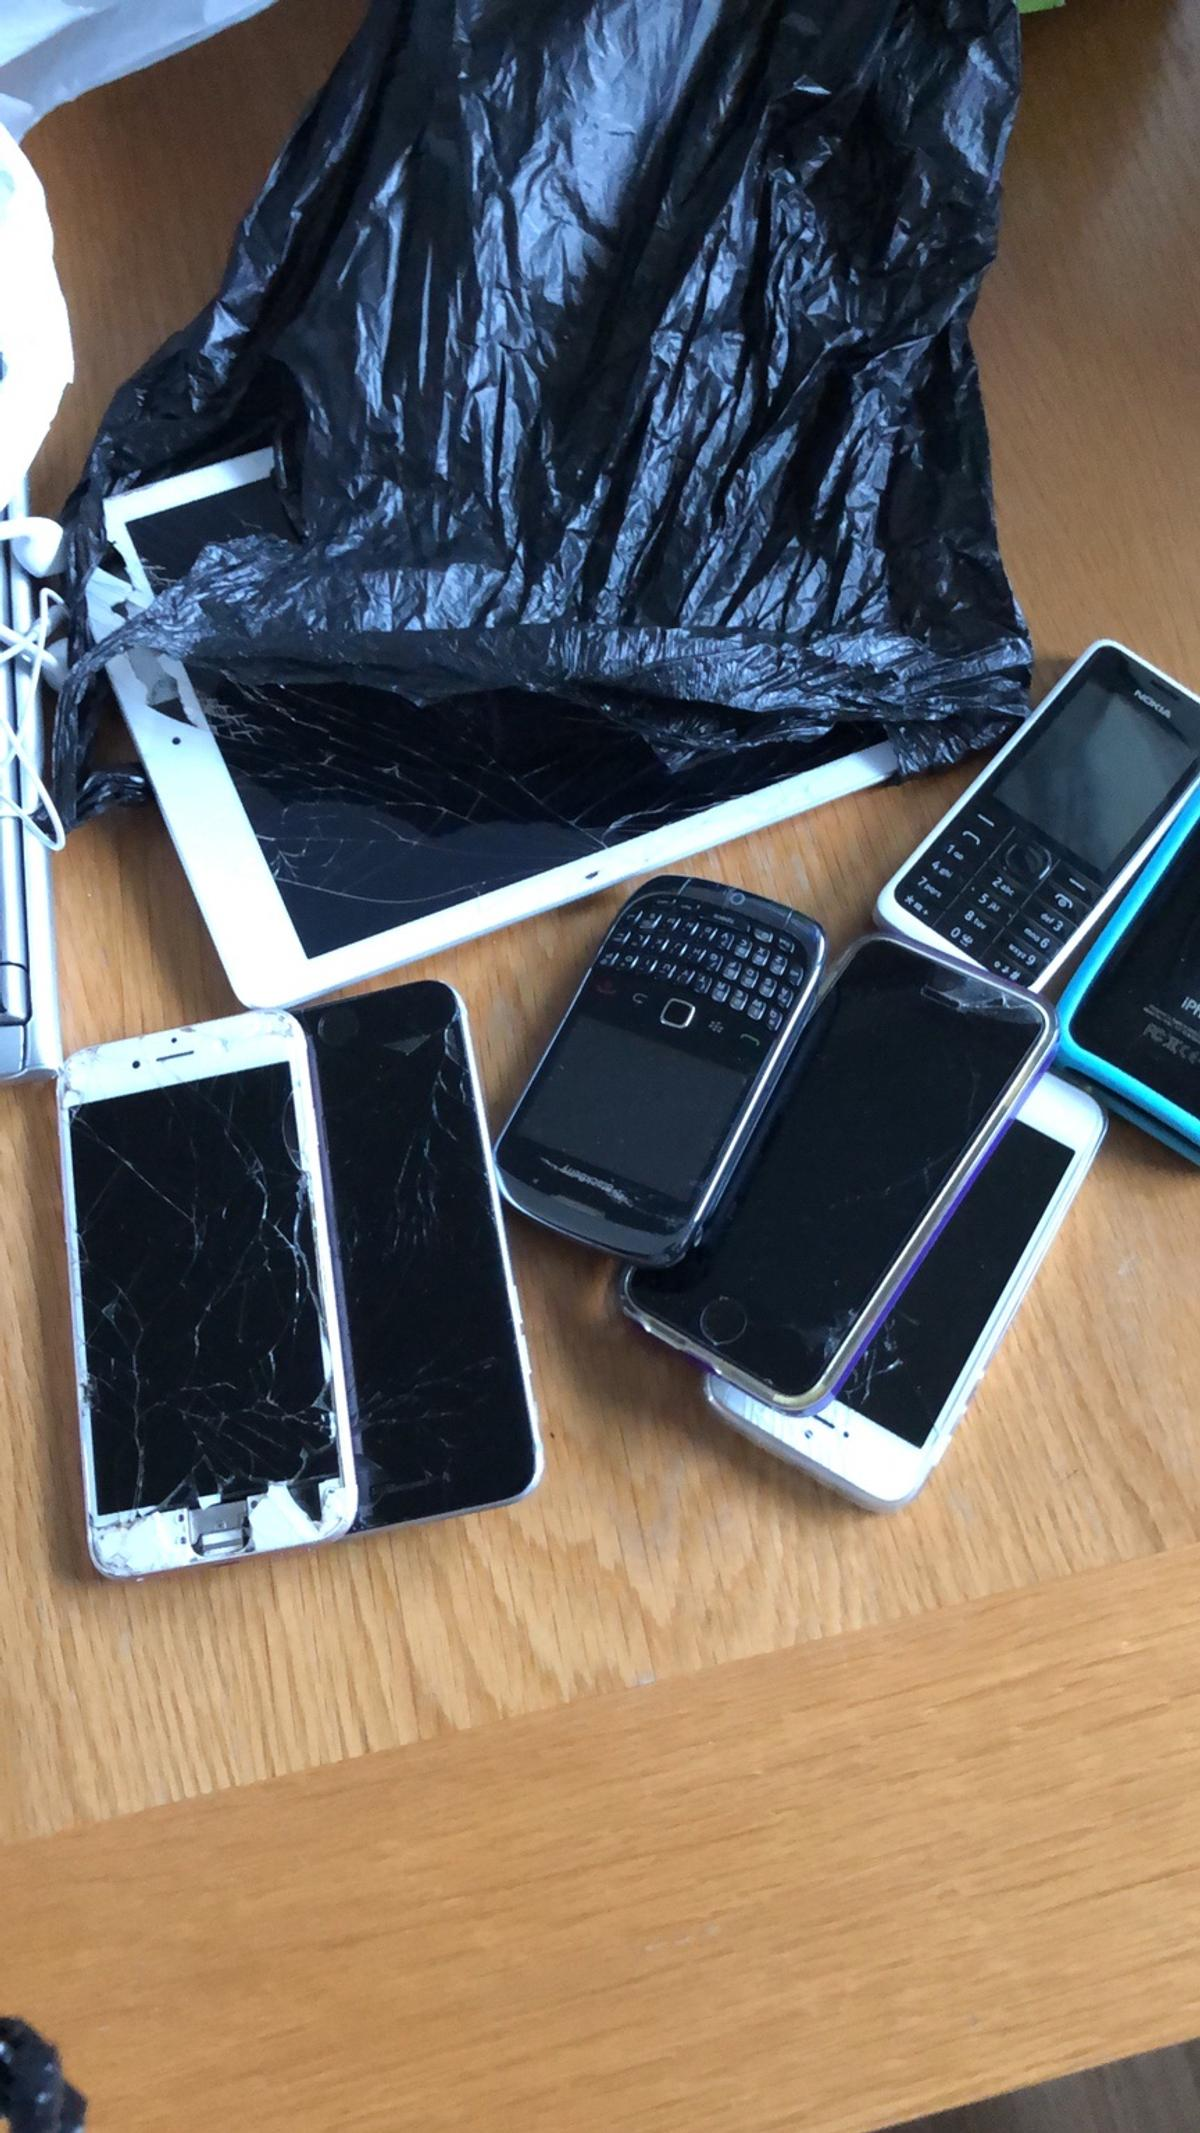 Bag full of phones iPhones with crack screens A blackberry need charger Nokia need charger Quick sale the lot £20